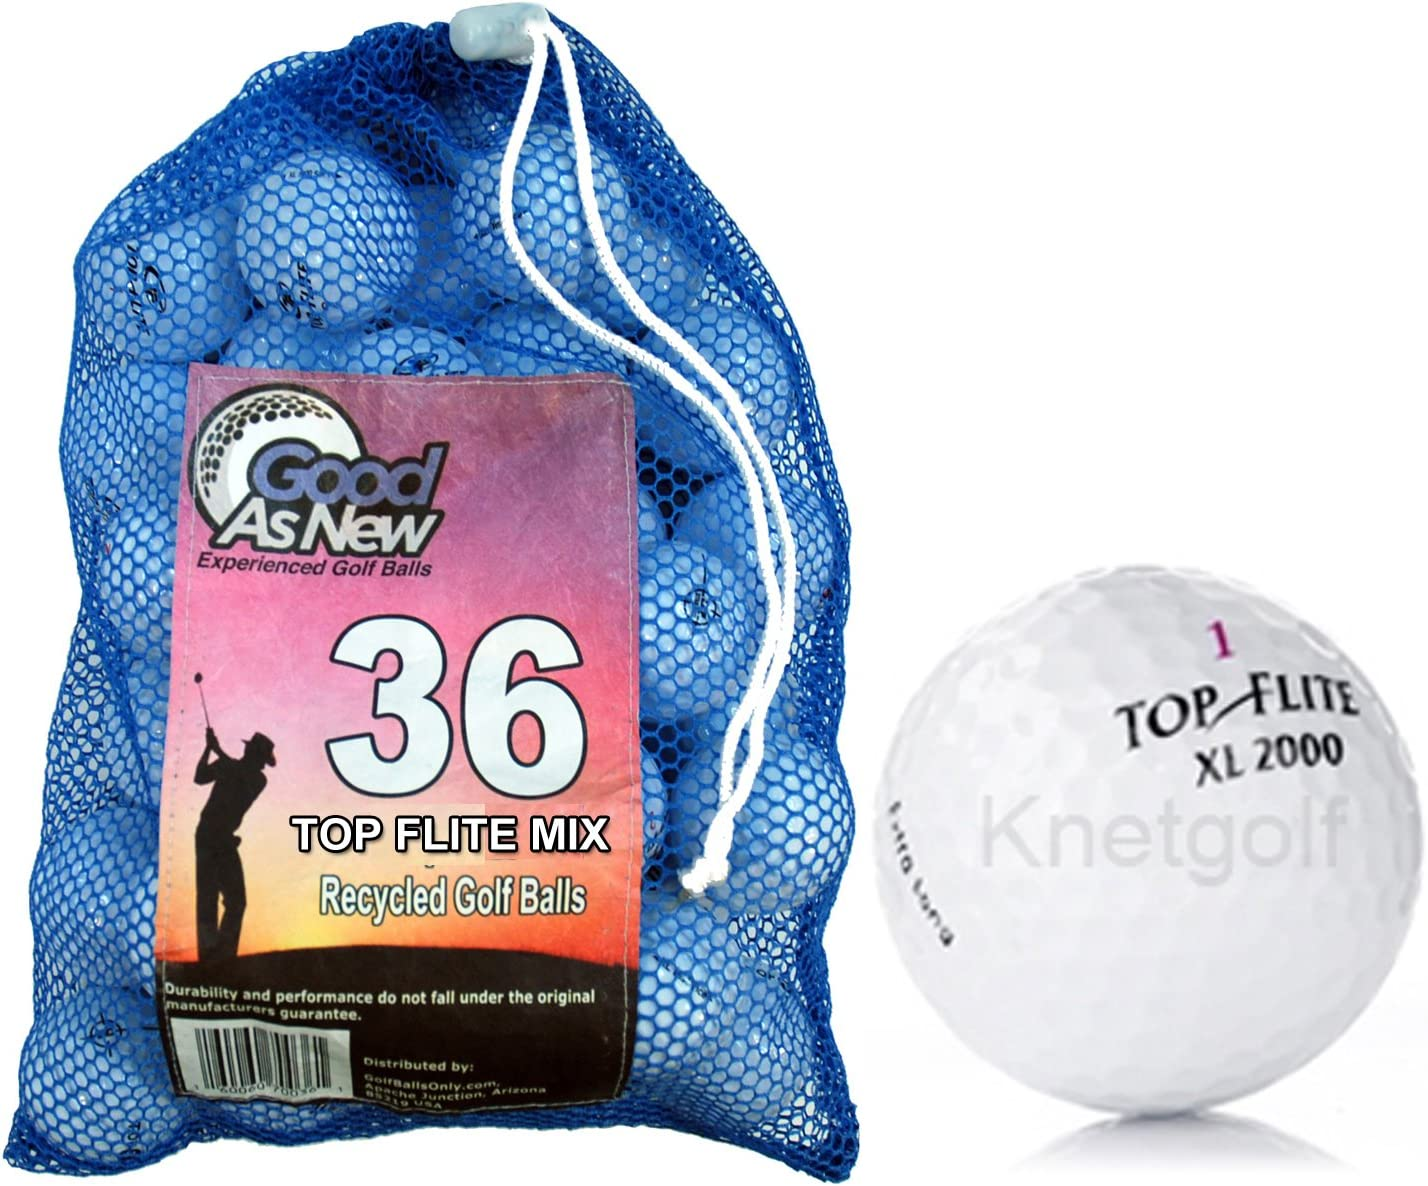 Top Flite Pre-owned Golf Ball Mix 36 pack